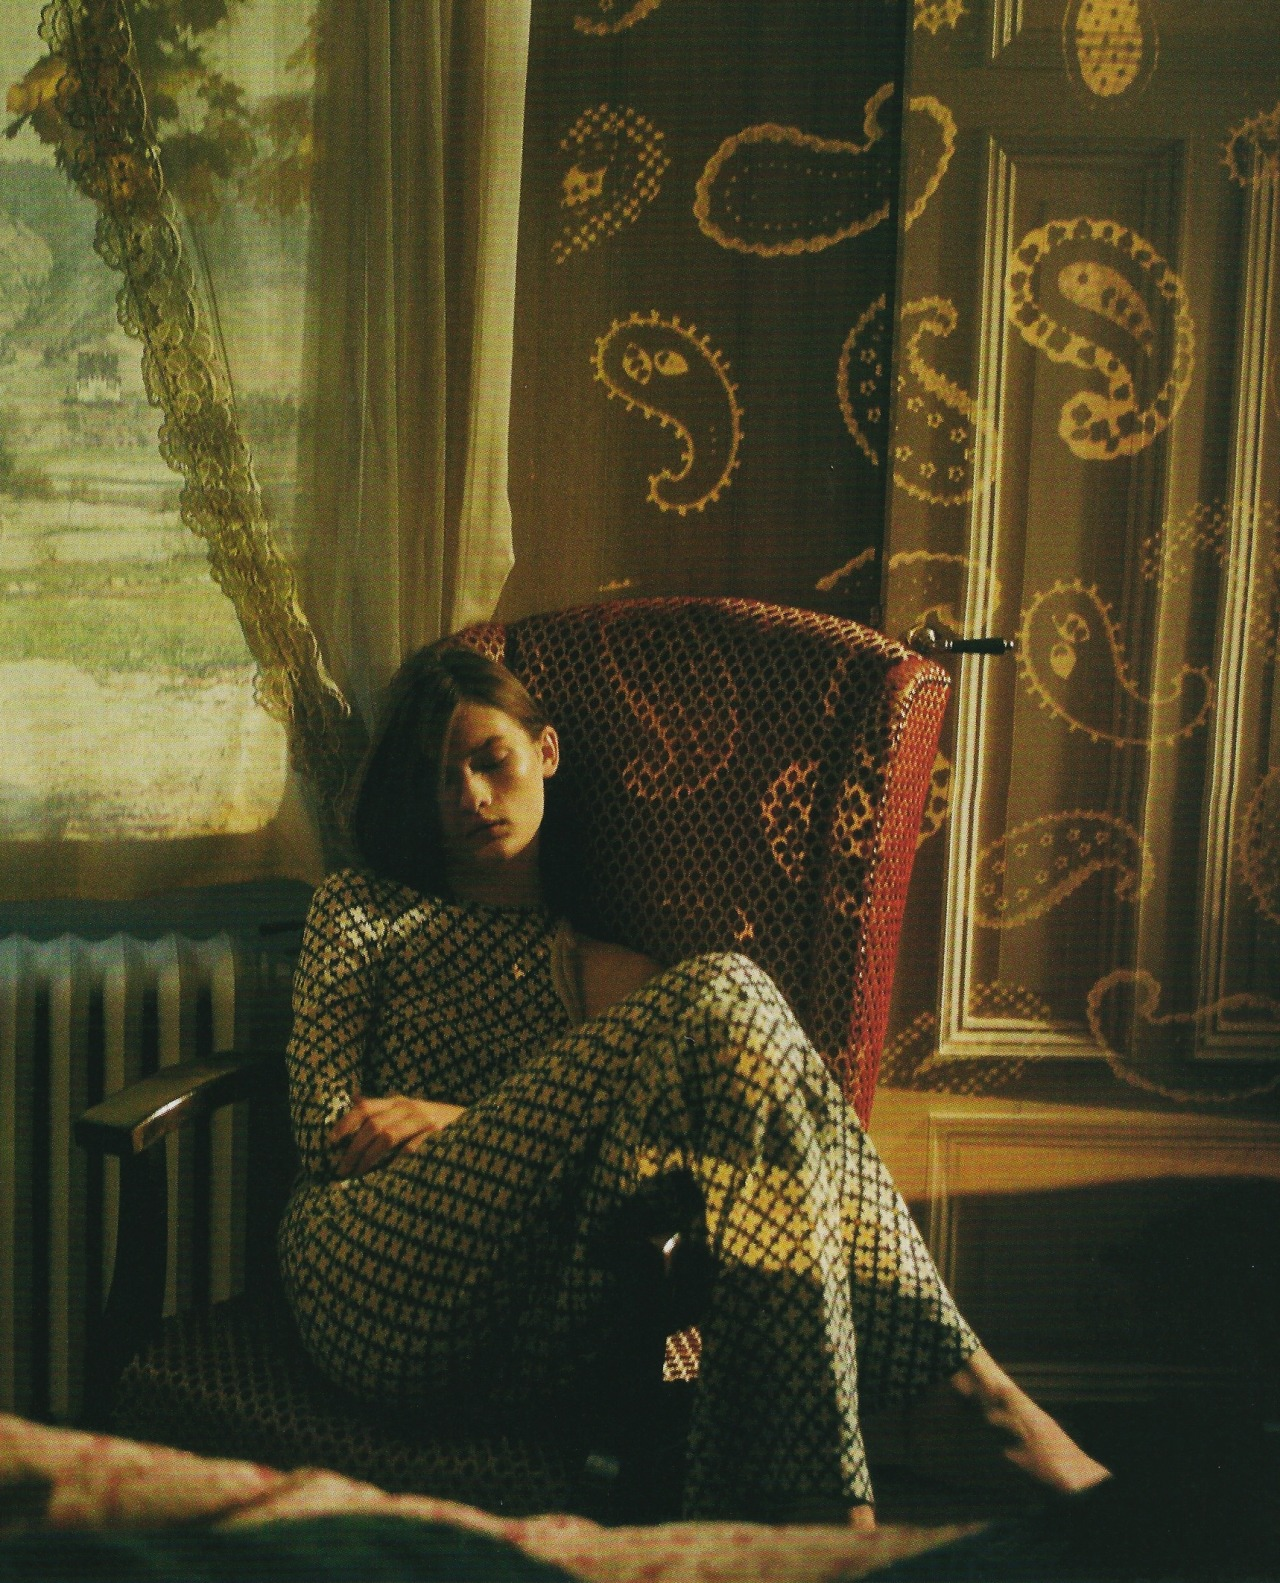 bosconos:  Lara Mullen for AnOther Magazine S/S 2012 by Martina Hoogland Ivanow